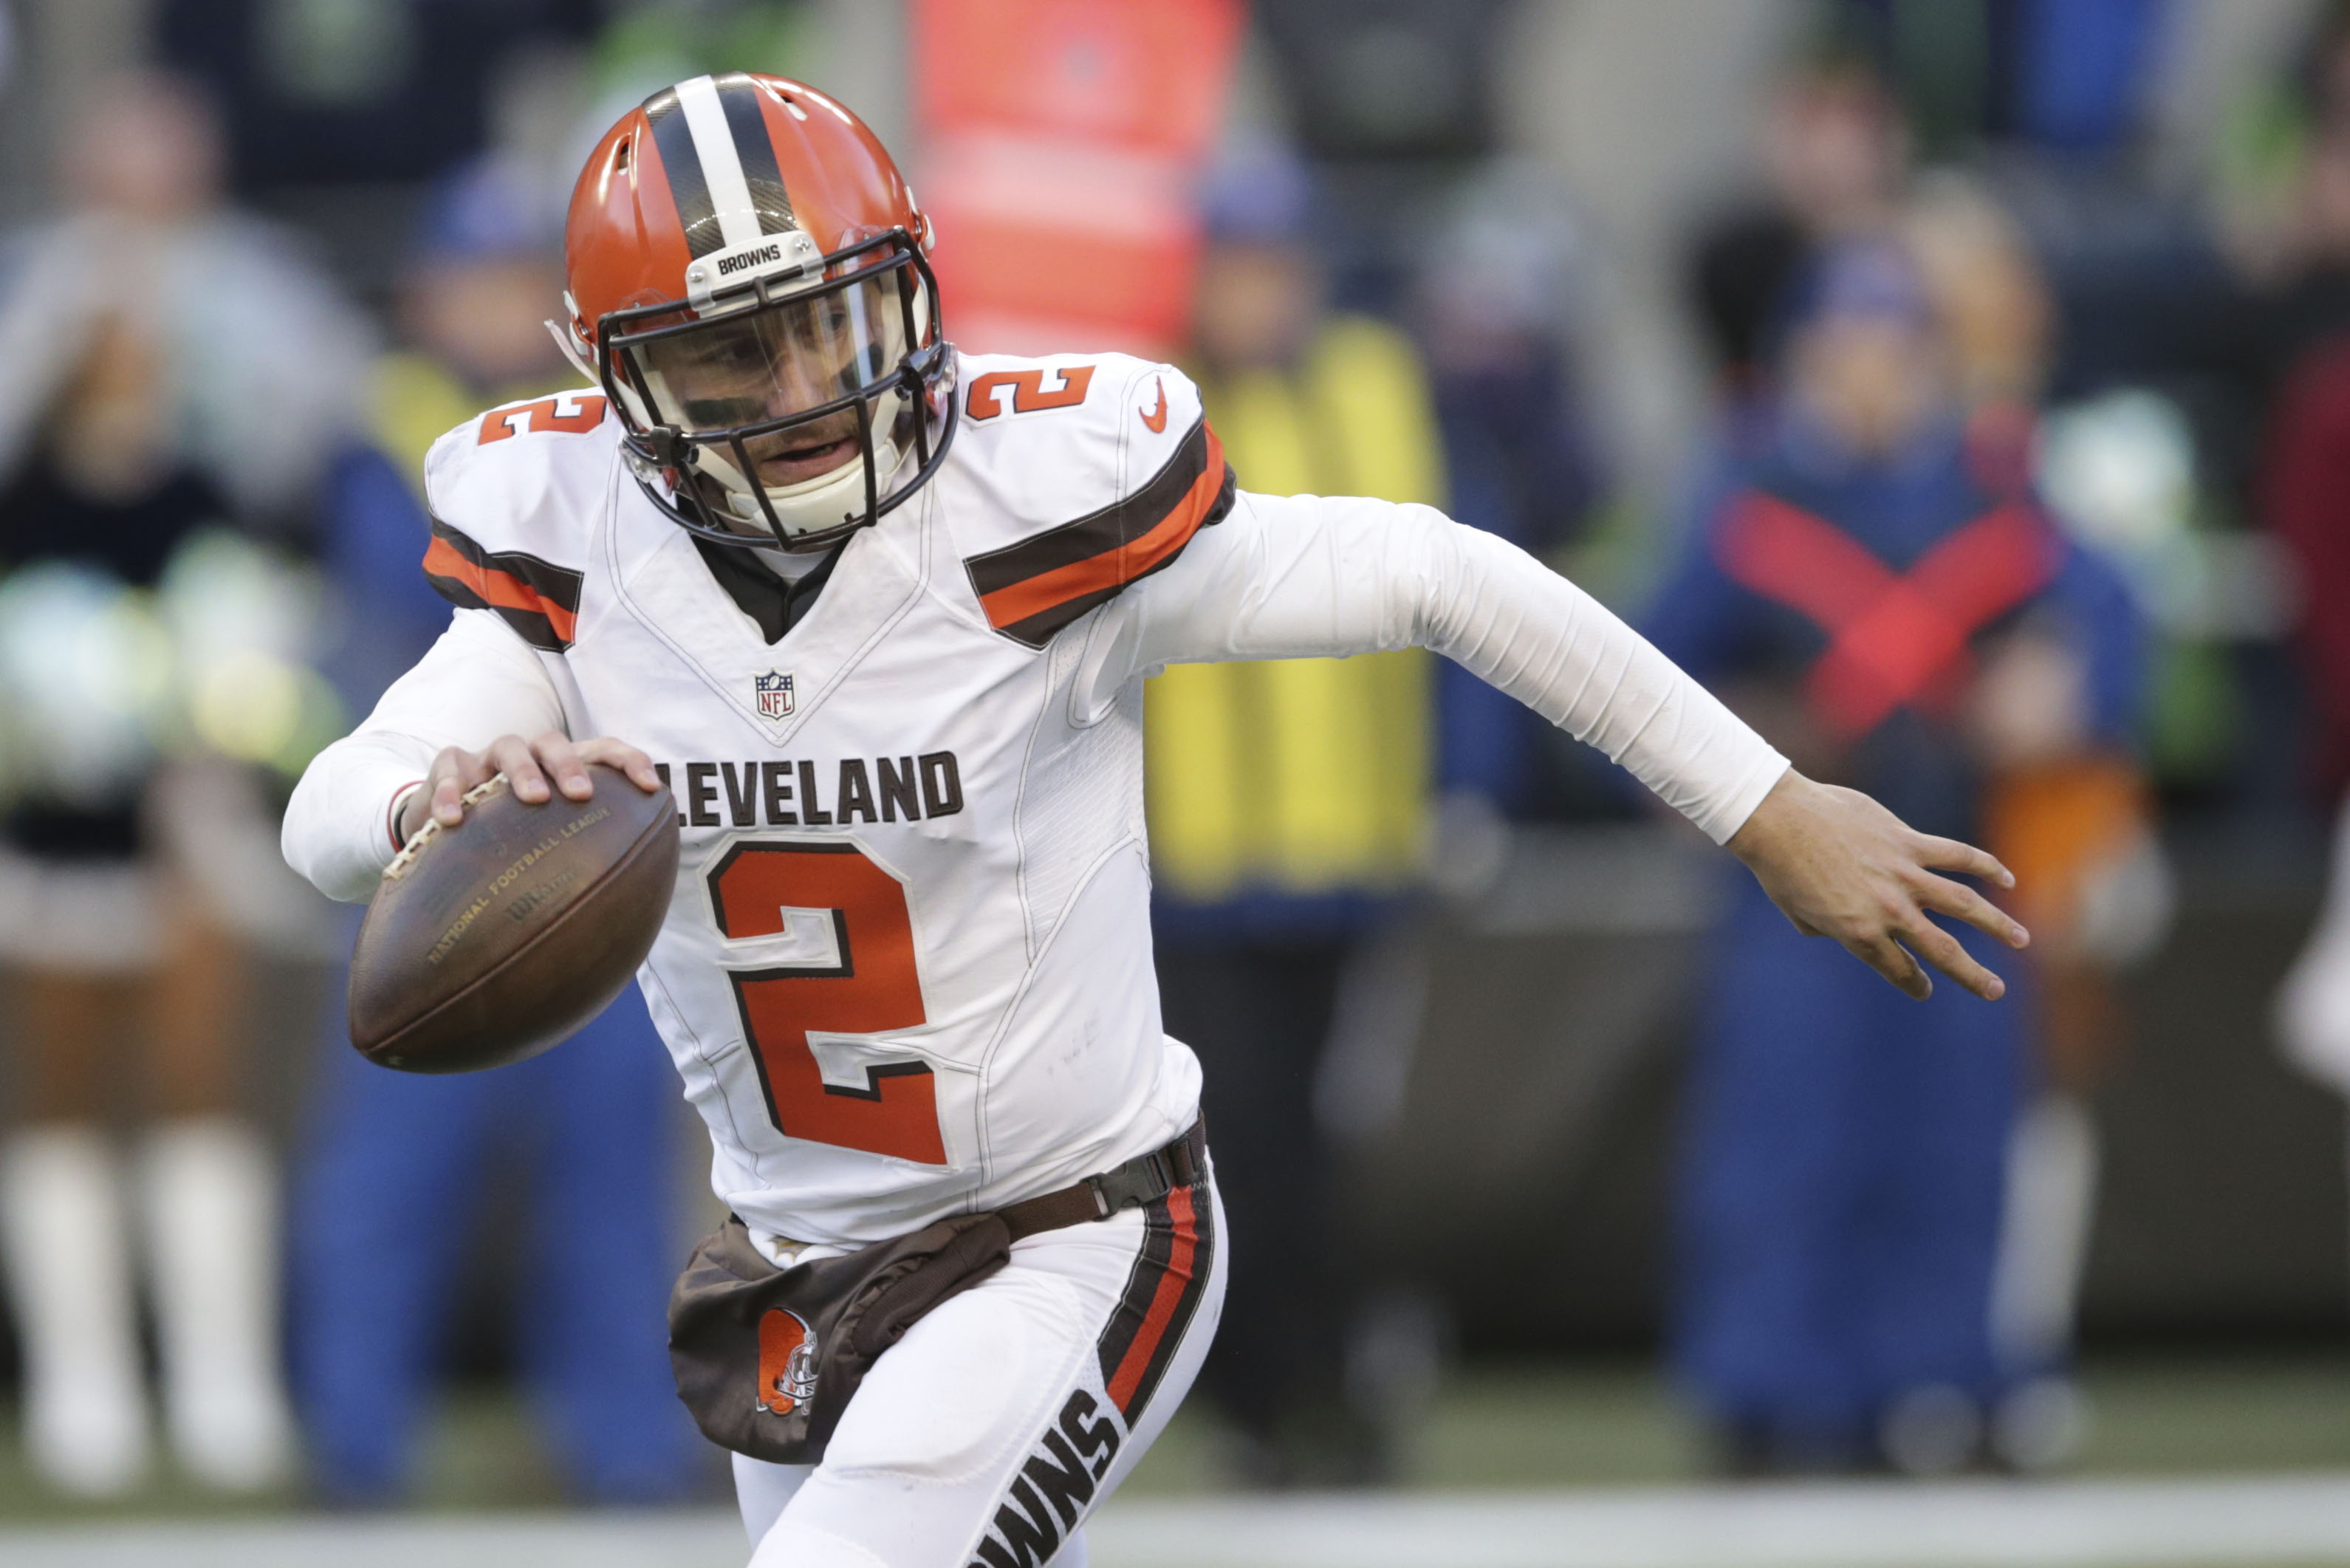 FILE - In this Sunday, Dec. 20, 2015 file photo, Cleveland Browns quarterback Johnny Manziel looks to pass against the Seattle Seahawks in the second half of an NFL football game in Seattle. Johnny Manziel's agent, Drew Rosenhaus, has told the troubled qu